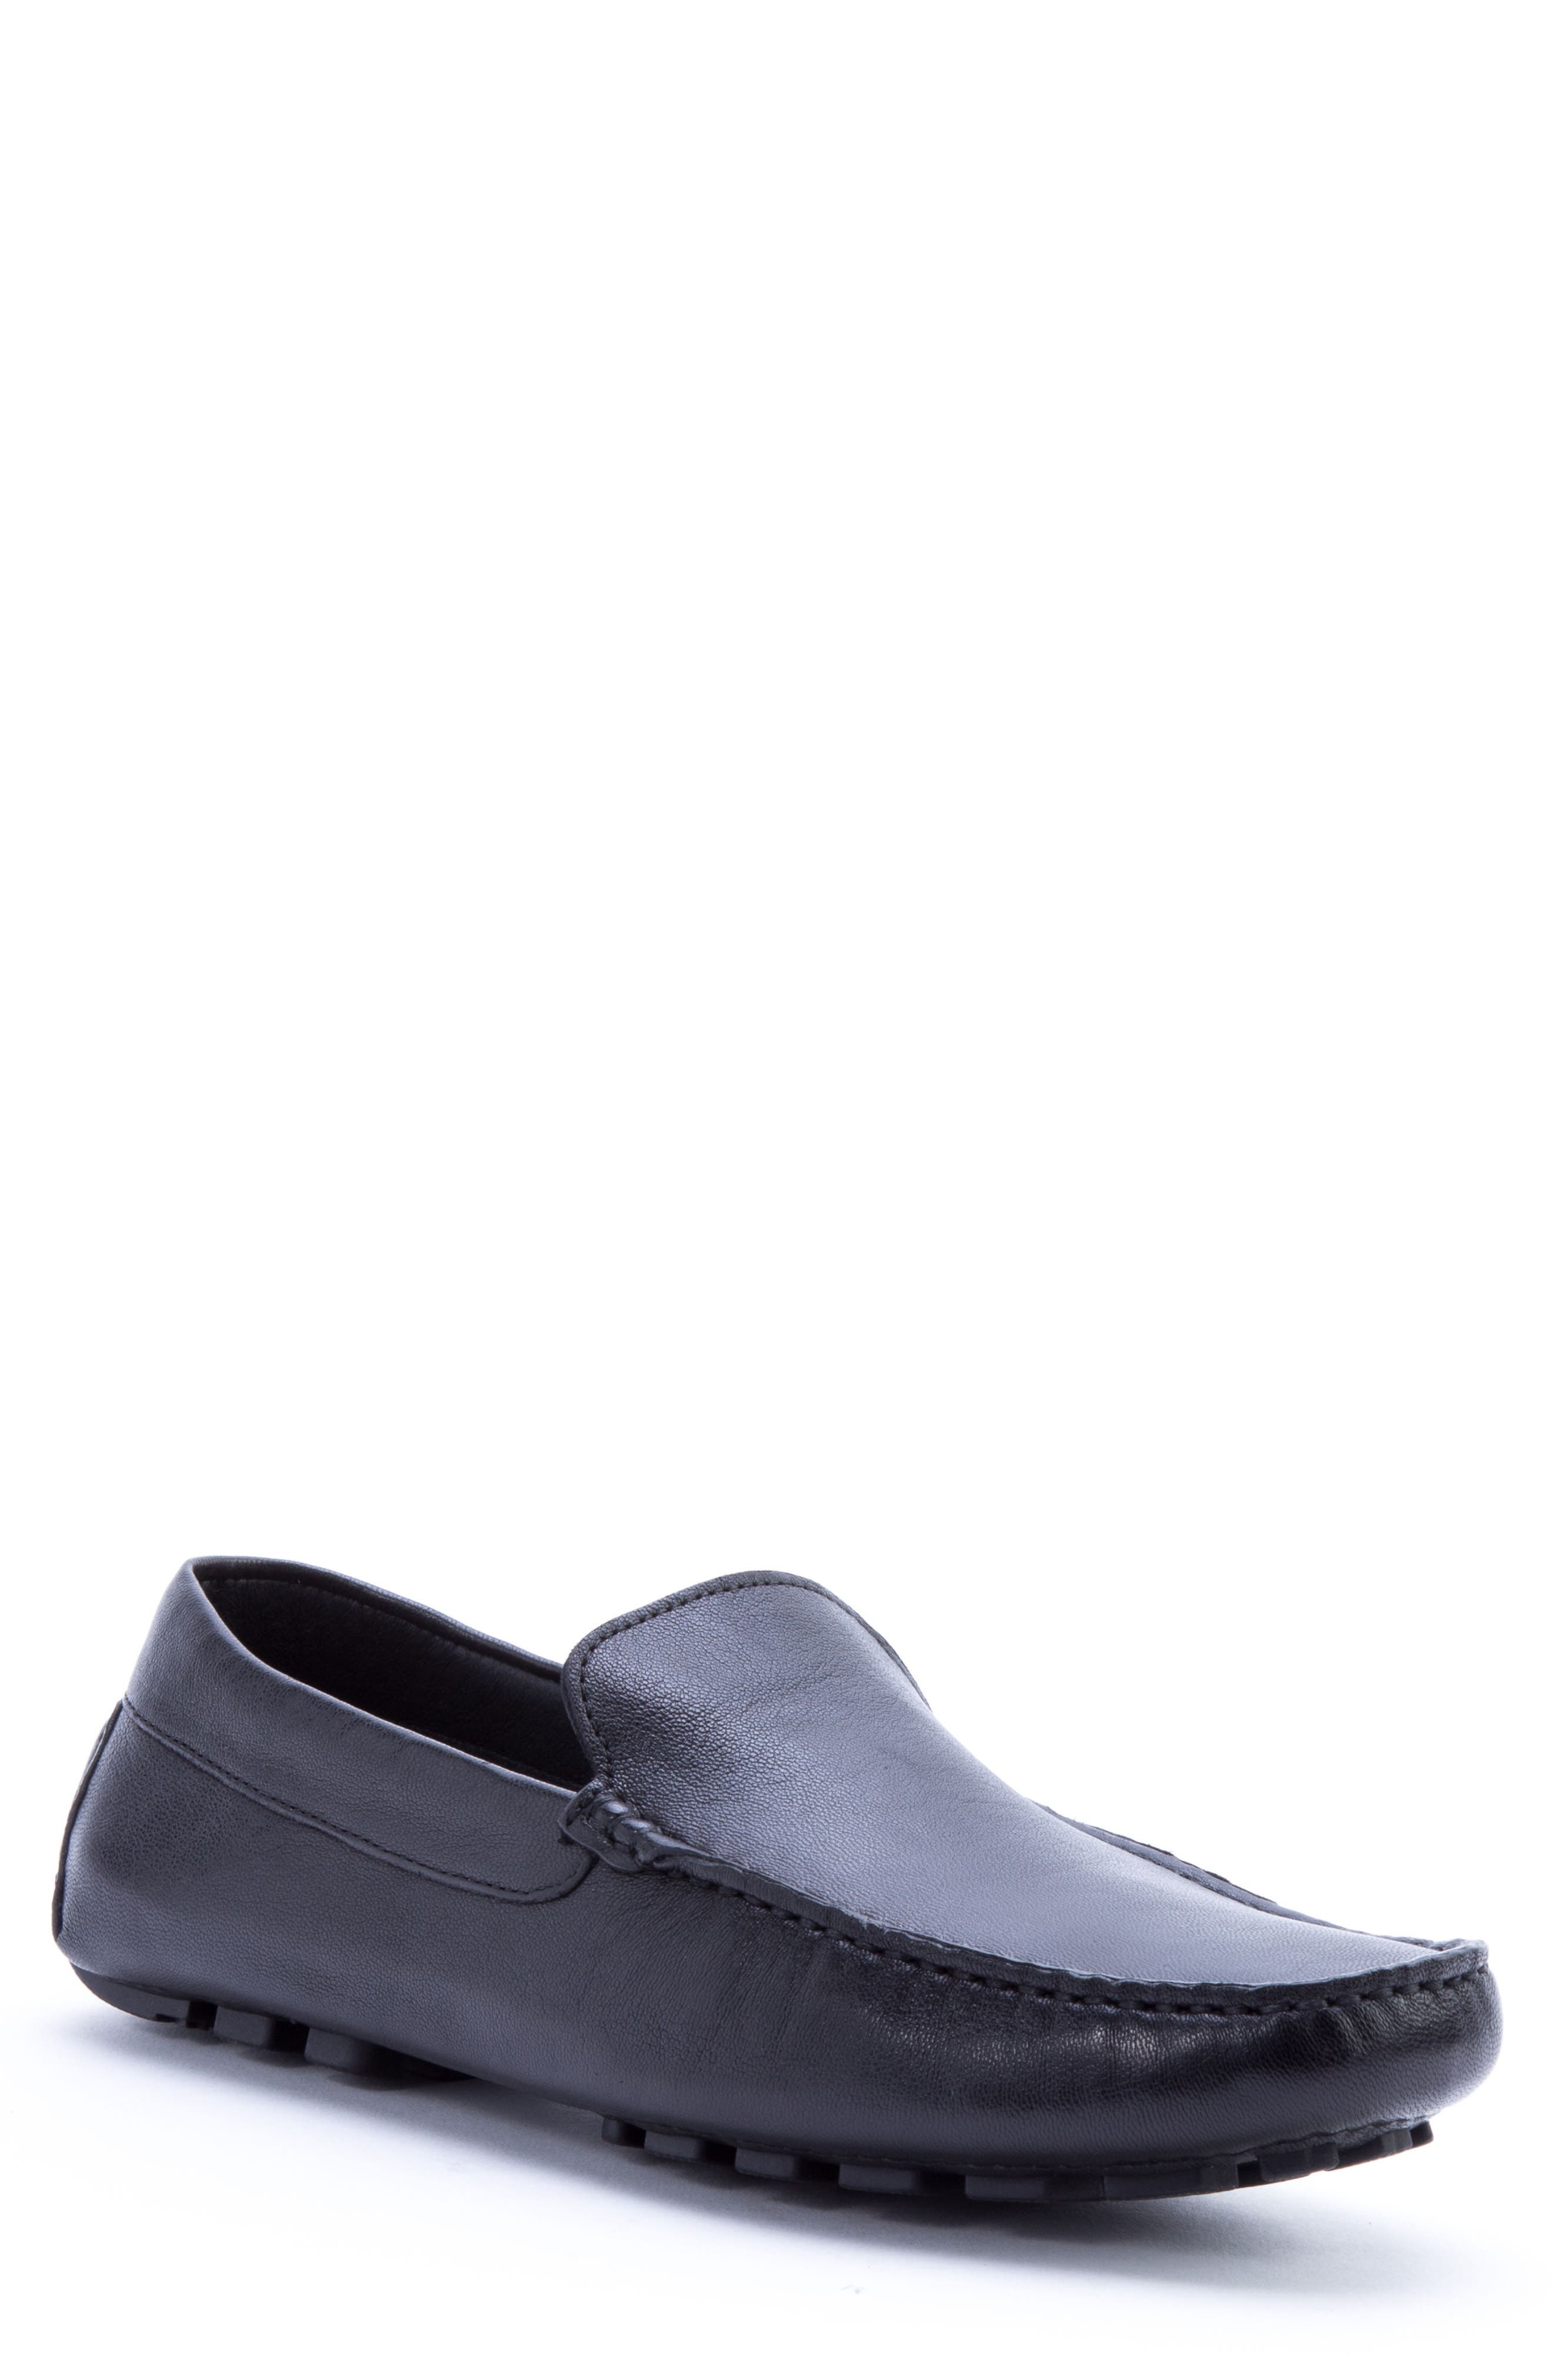 Picasso 3 Moc Toe Driving Loafer,                         Main,                         color, BLACK LEATHER